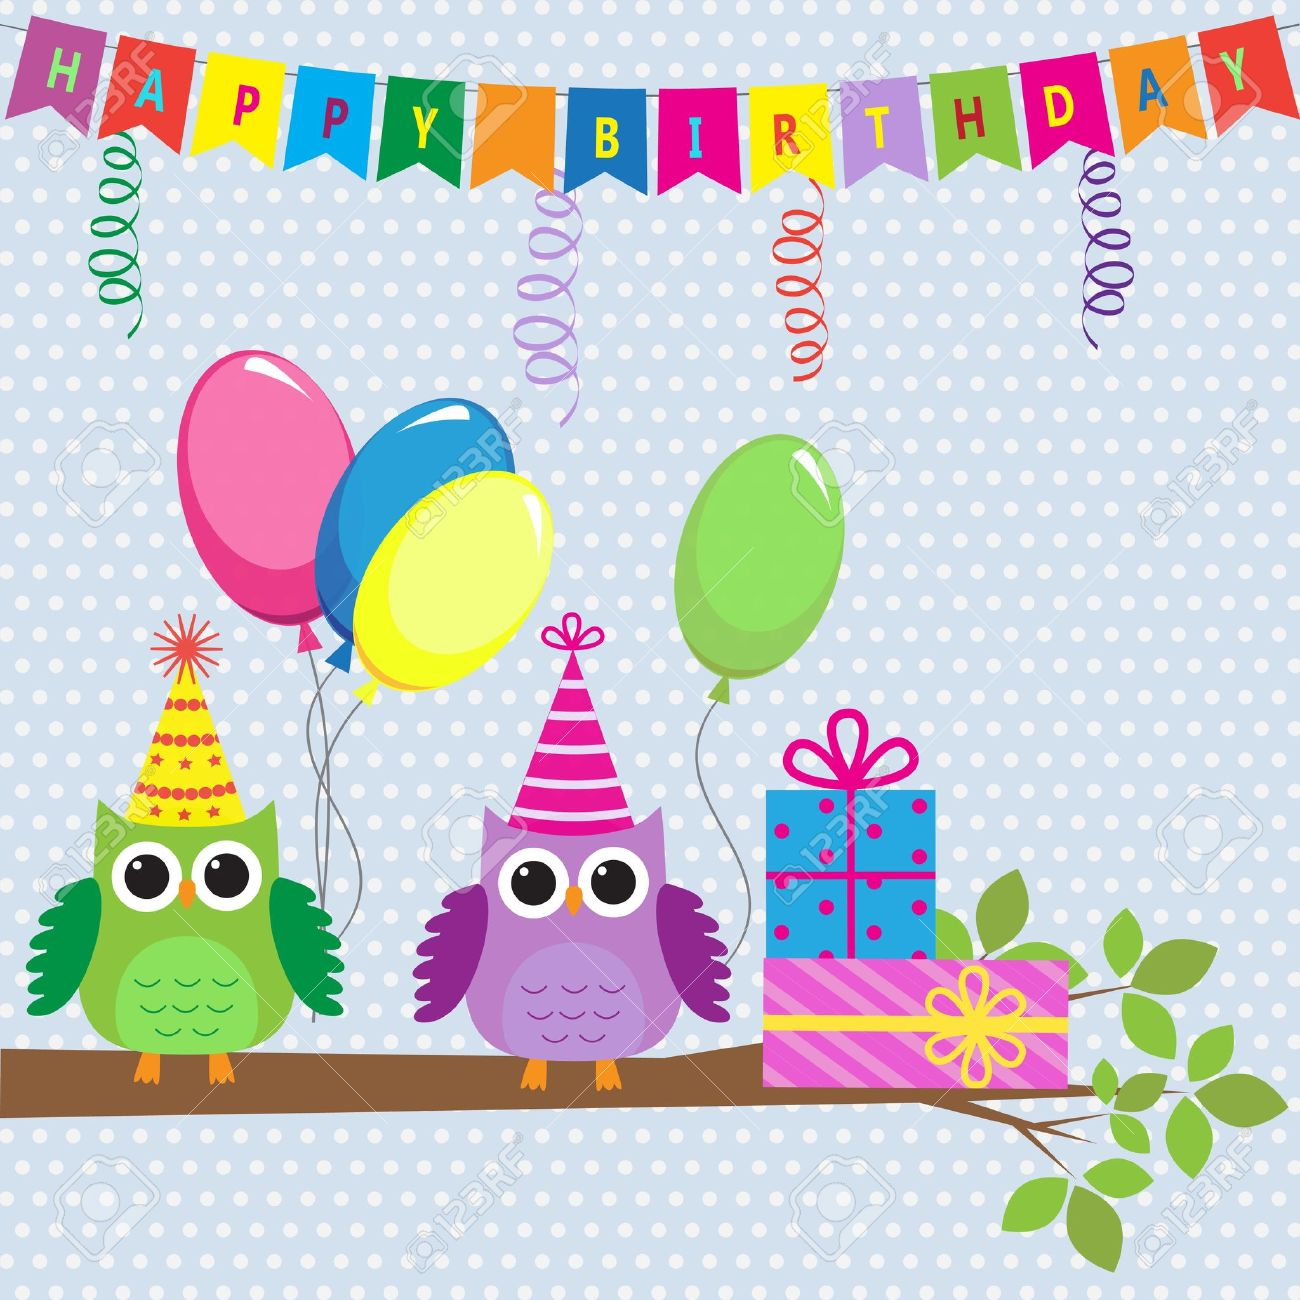 Unforgettable And Charming Birthday Wishes To Send To Your Beloved